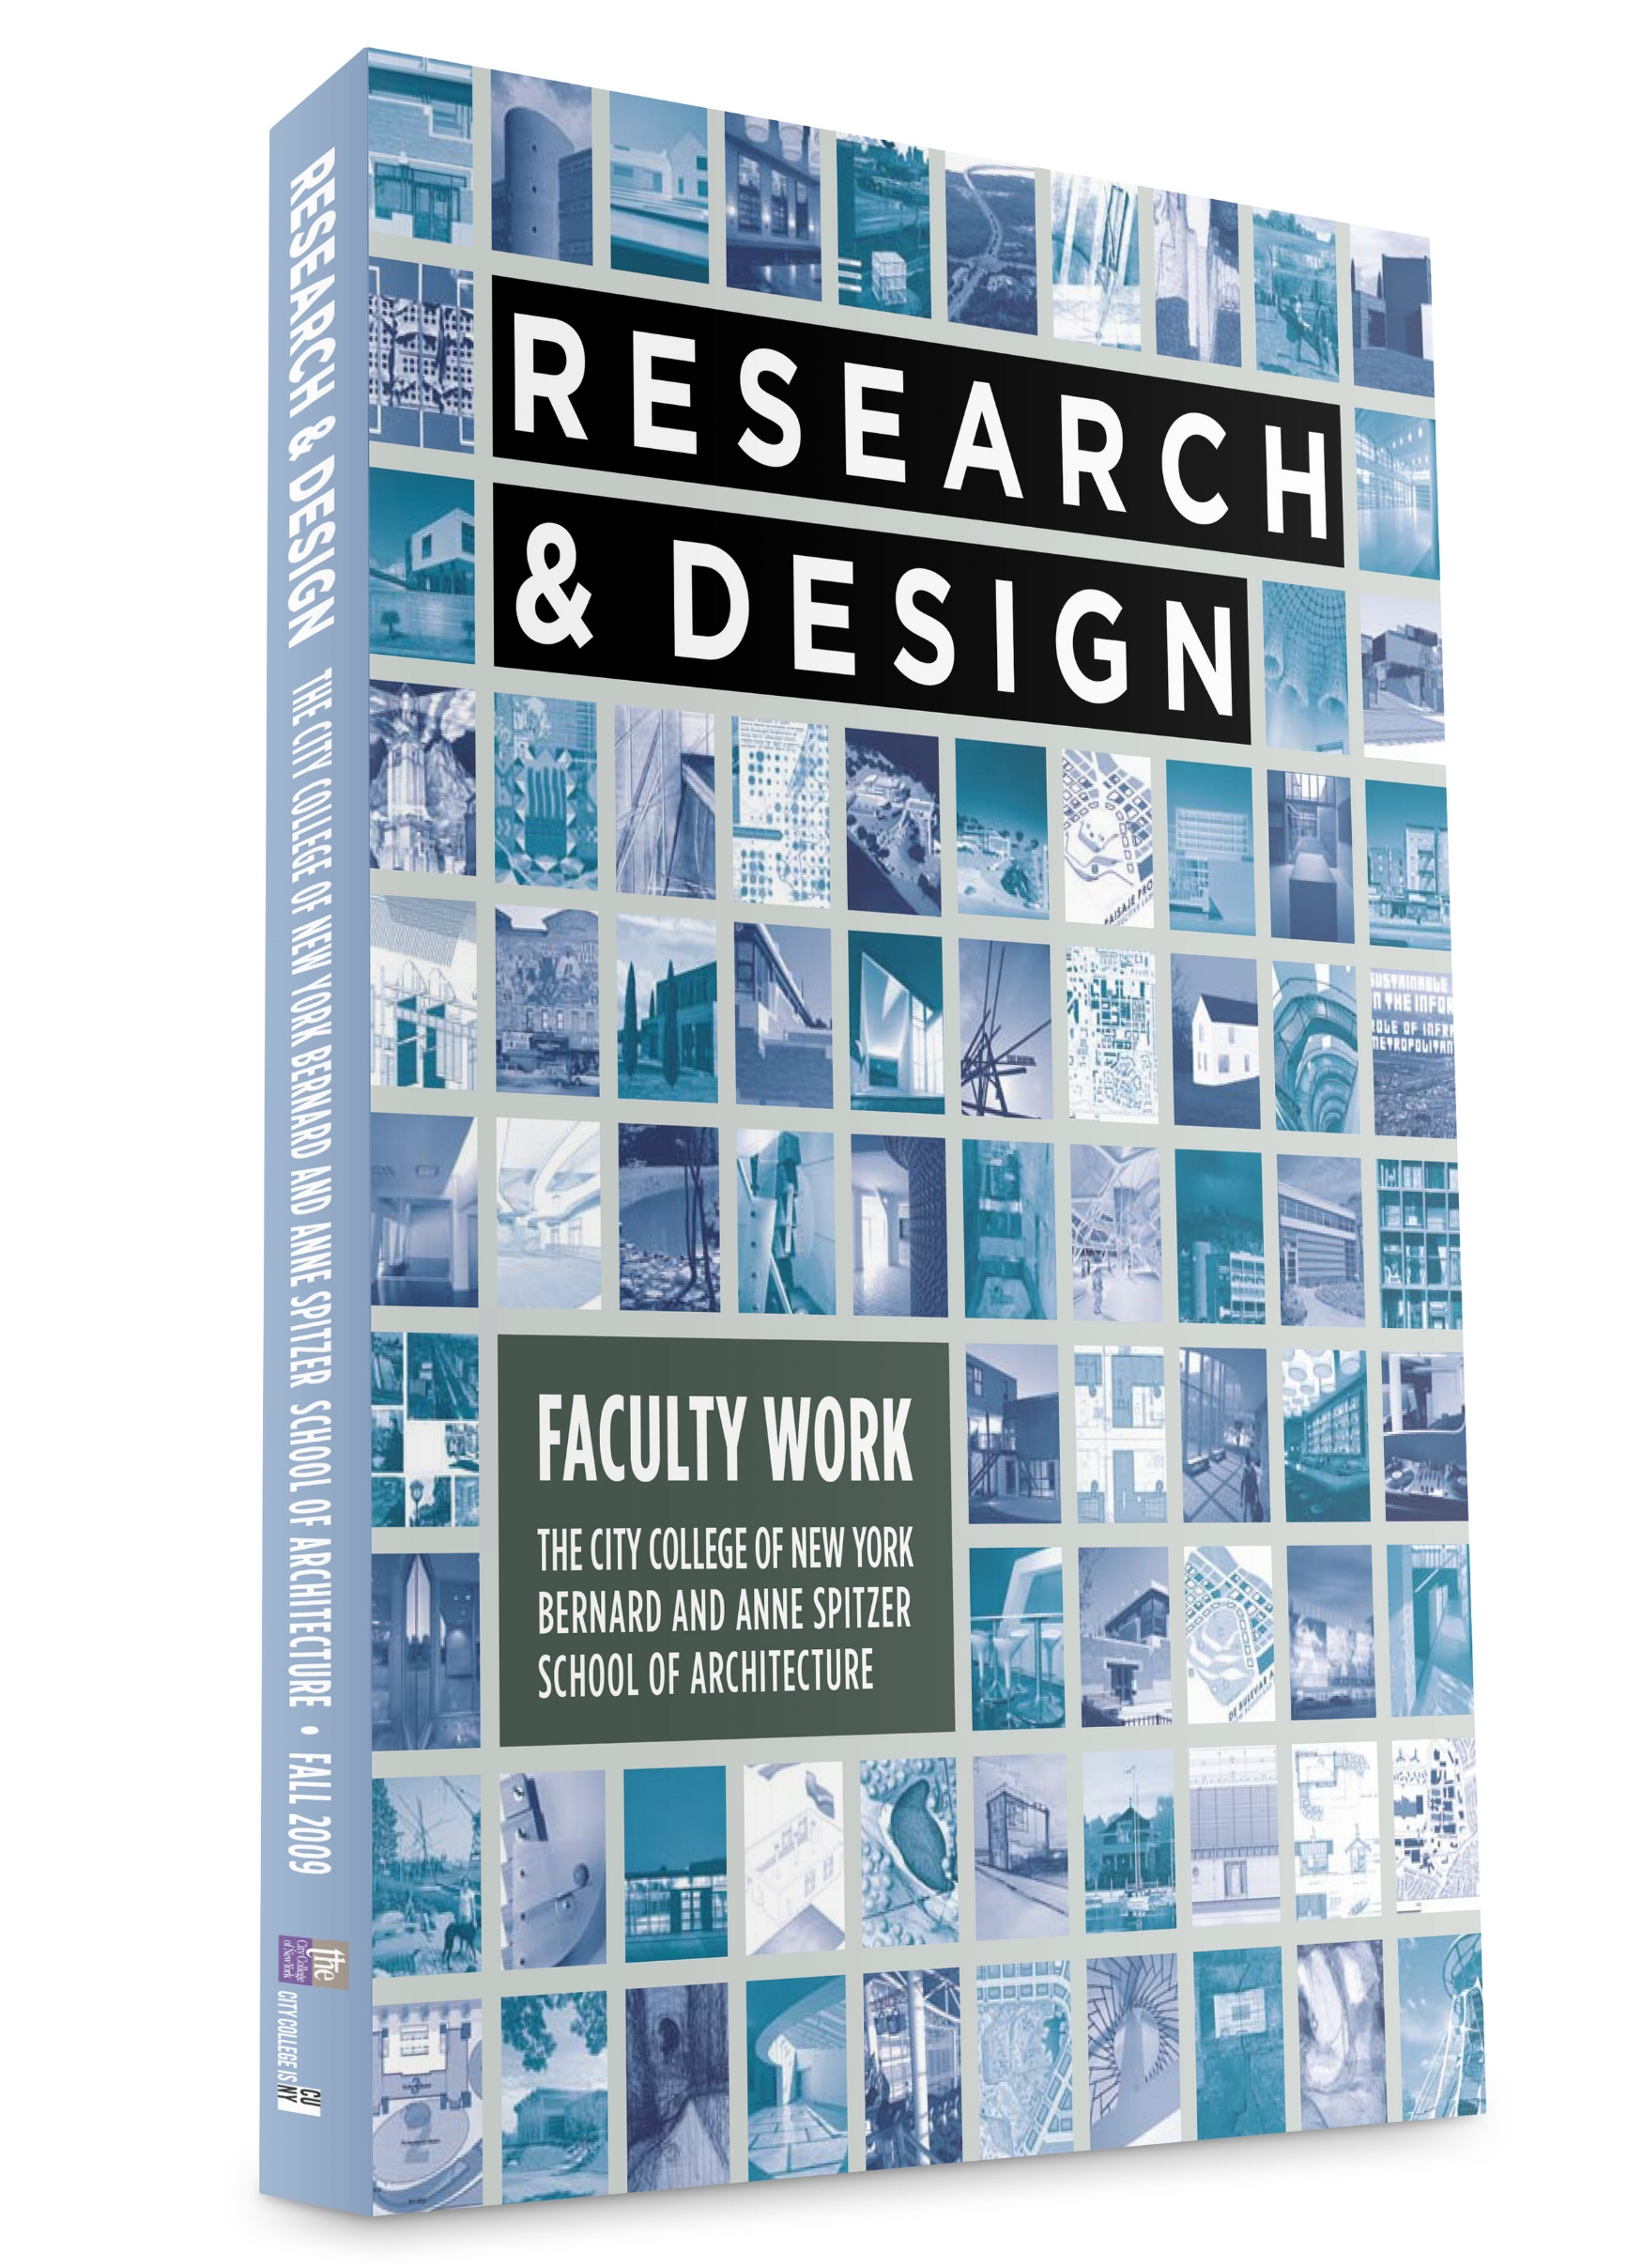 CCNY research Design Cover.jpg